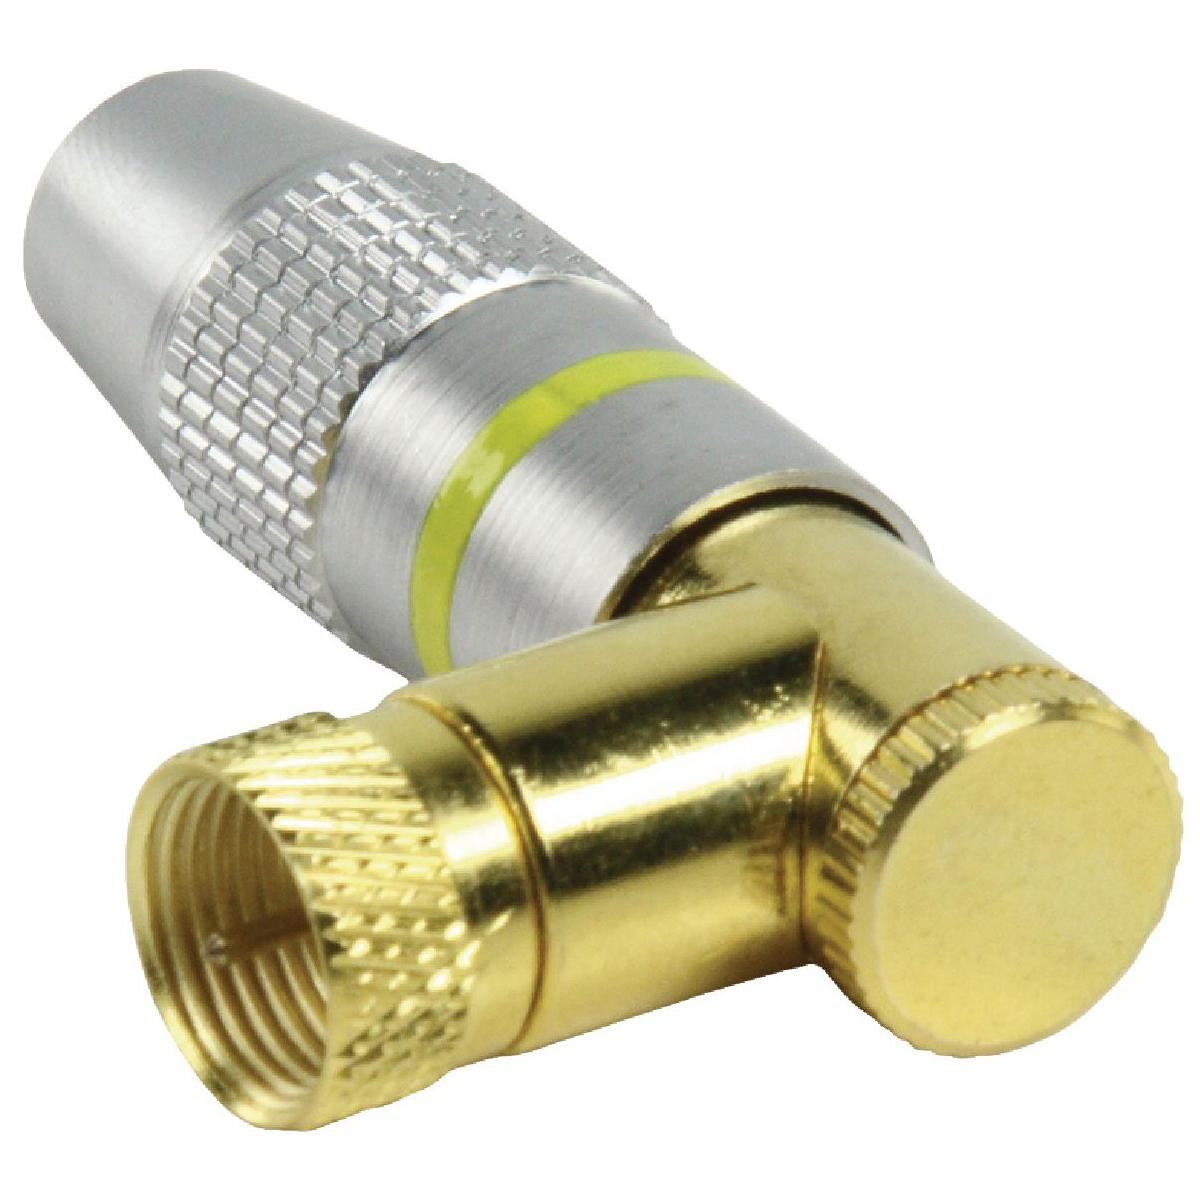 F-Connector - Professioneel Aantal: 2